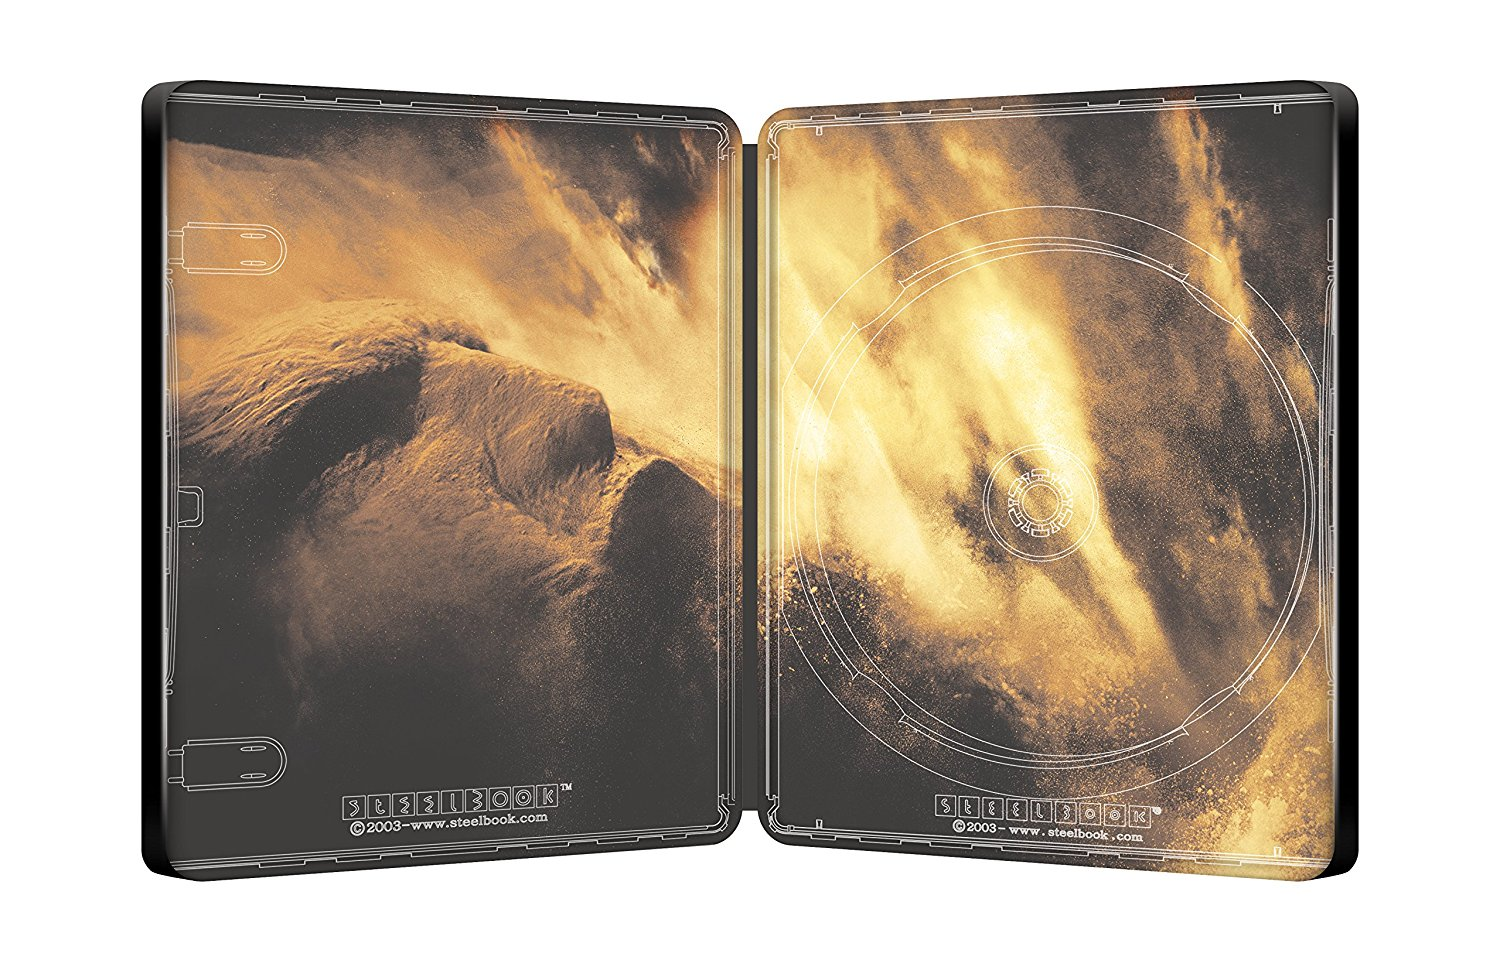 Mummy steelbook 2